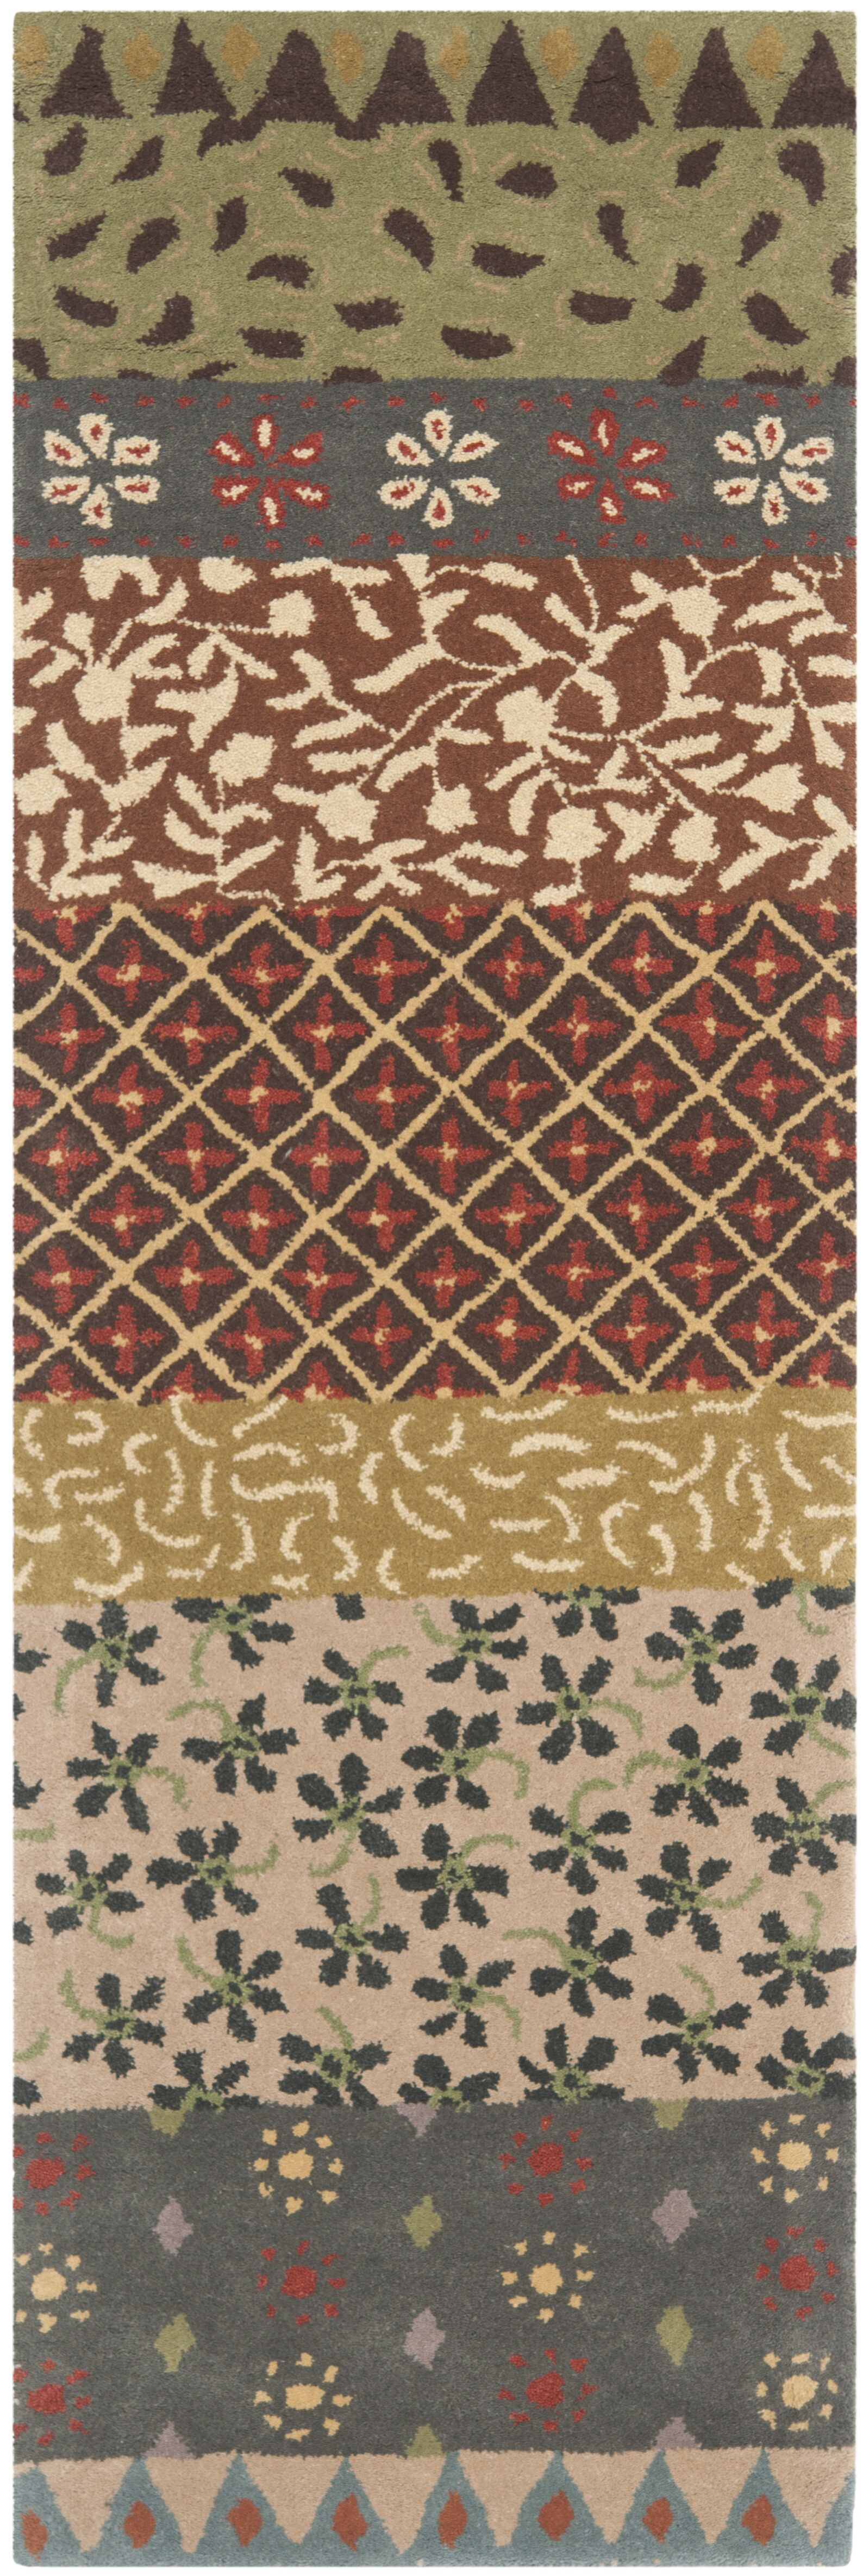 Mccullough Ivory Area Rug Rug Size: Runner 2'3